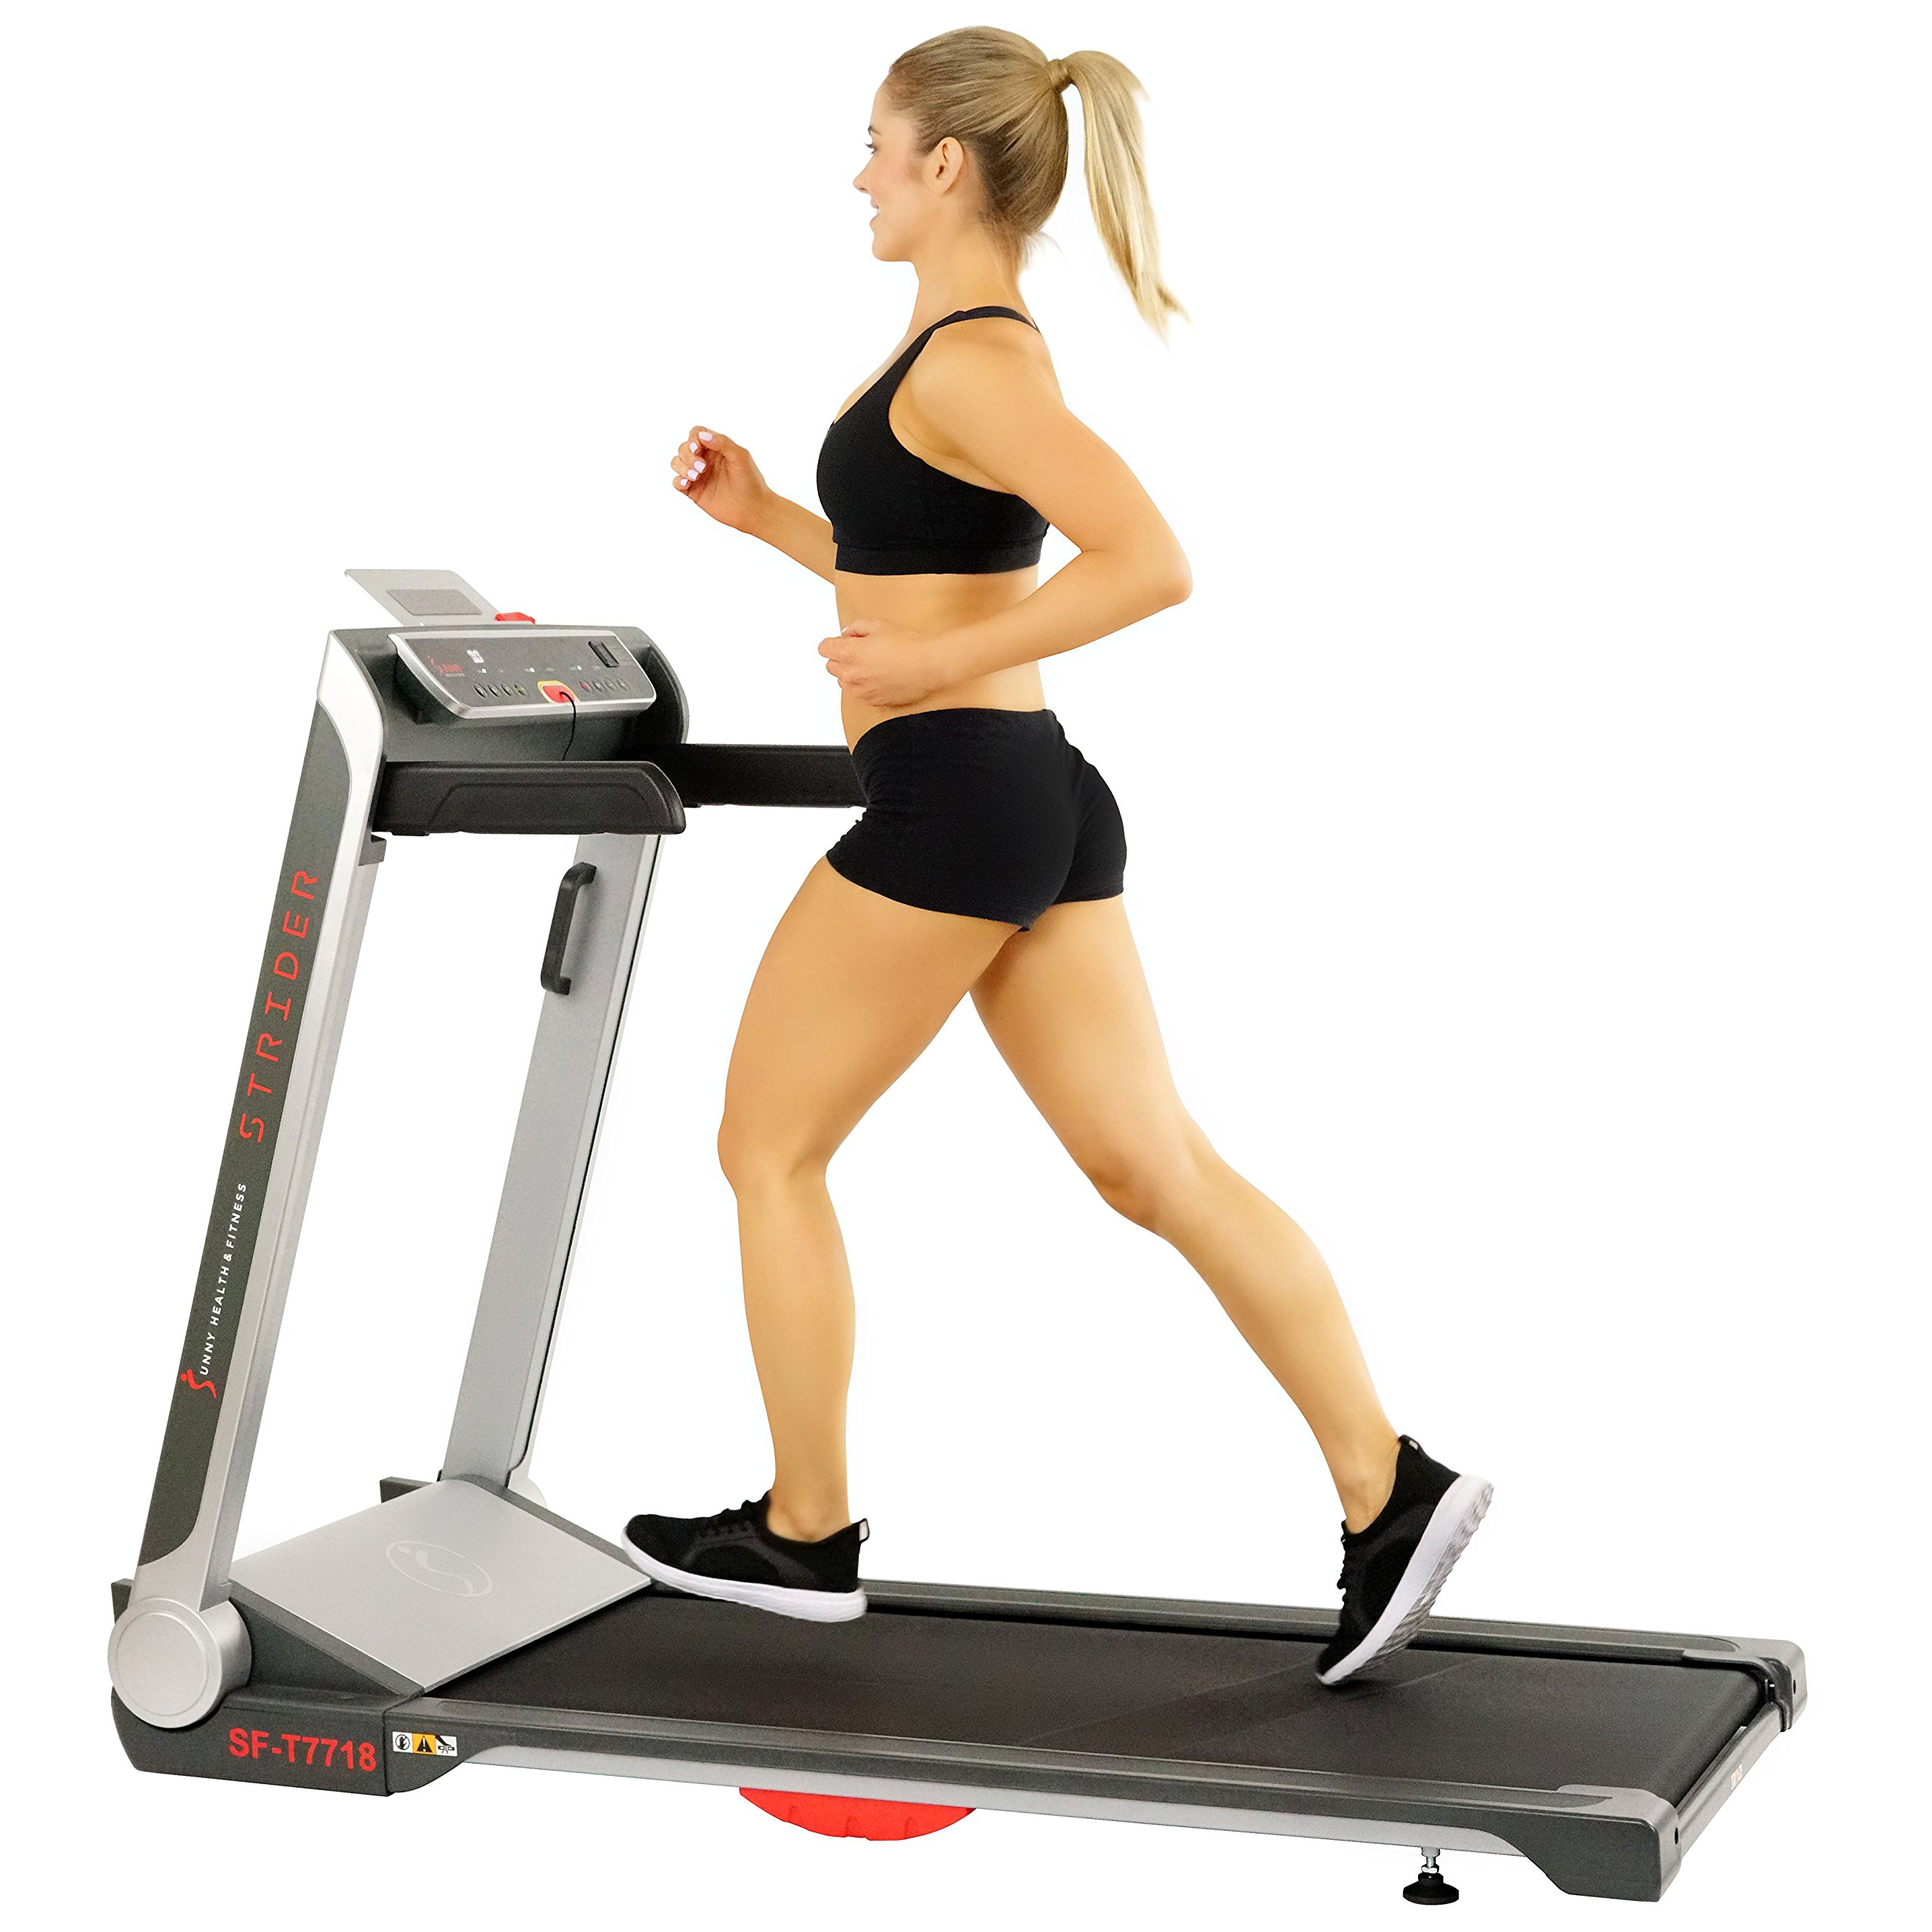 Sunny Health & Fitness No Assembly Motorized Folding Running Treadmill, 20'' Wide Belt, Flat Folding & Low Profile for Portability with Speakers for USB and AUX Audio Connection - Strider, SF-T7718